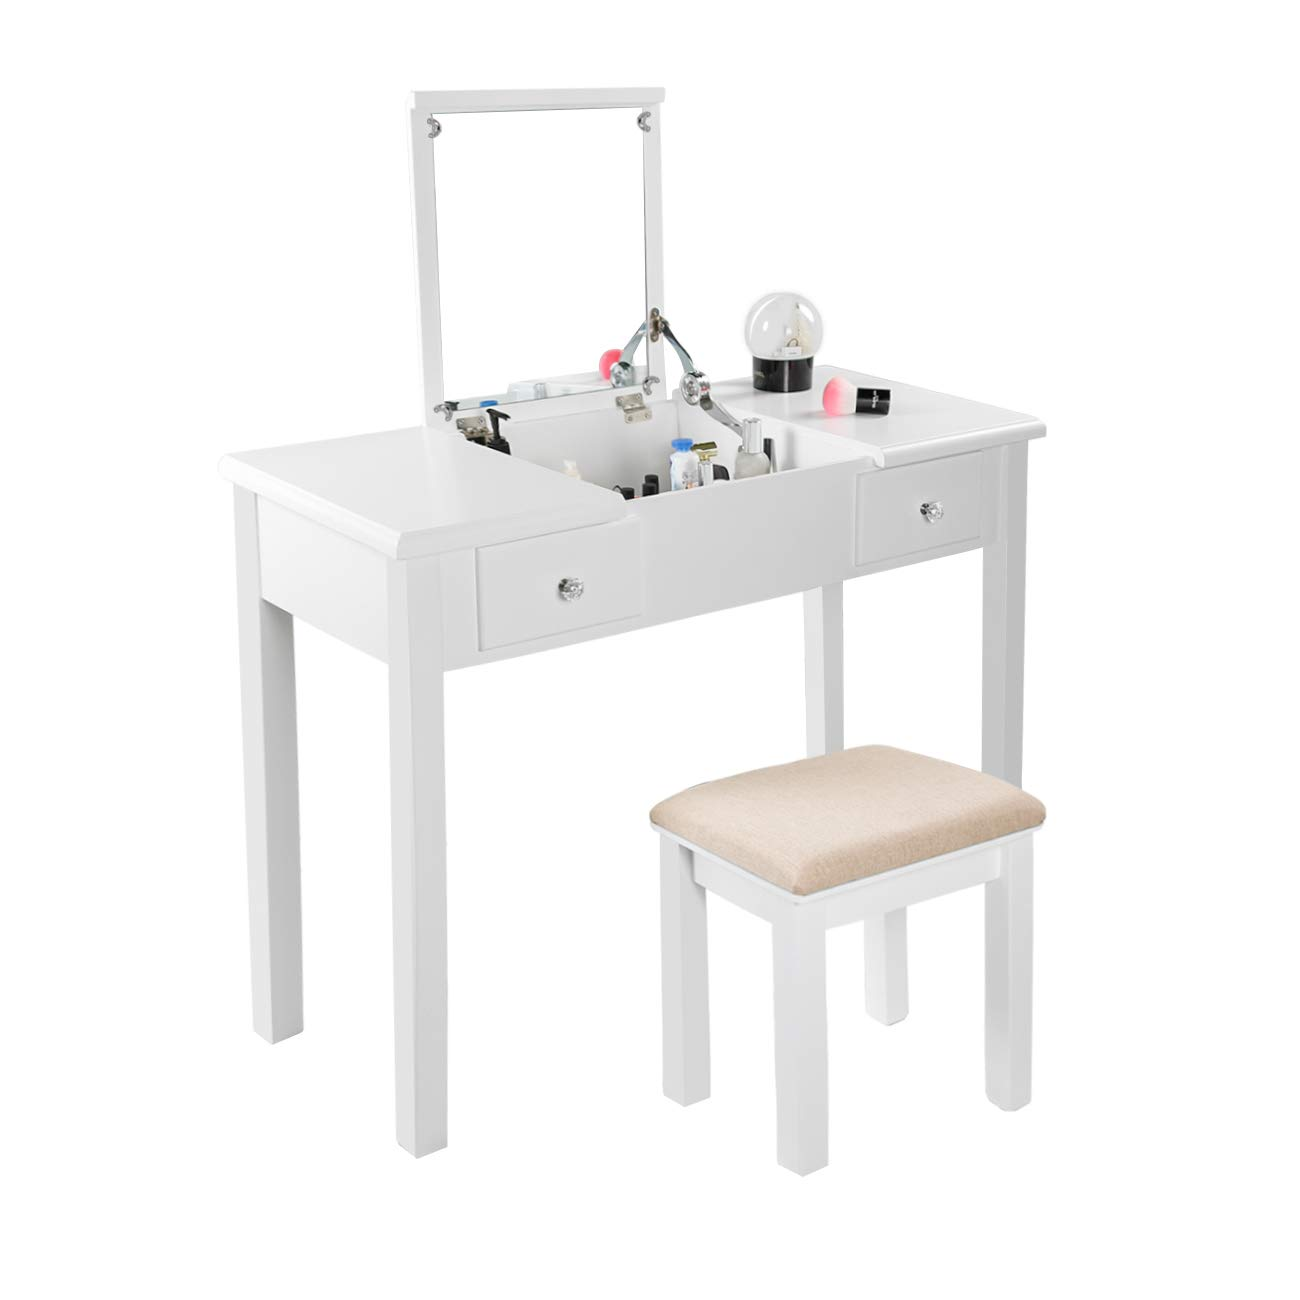 AODAILIHB Vanity Table with Flip Top Mirror Makeup Dressing Table Writing Desk with Cushioning Makeup Stool Set, 2 Drawers 3 Removable Organizers Easy Assembly (White) by AODAILIHB